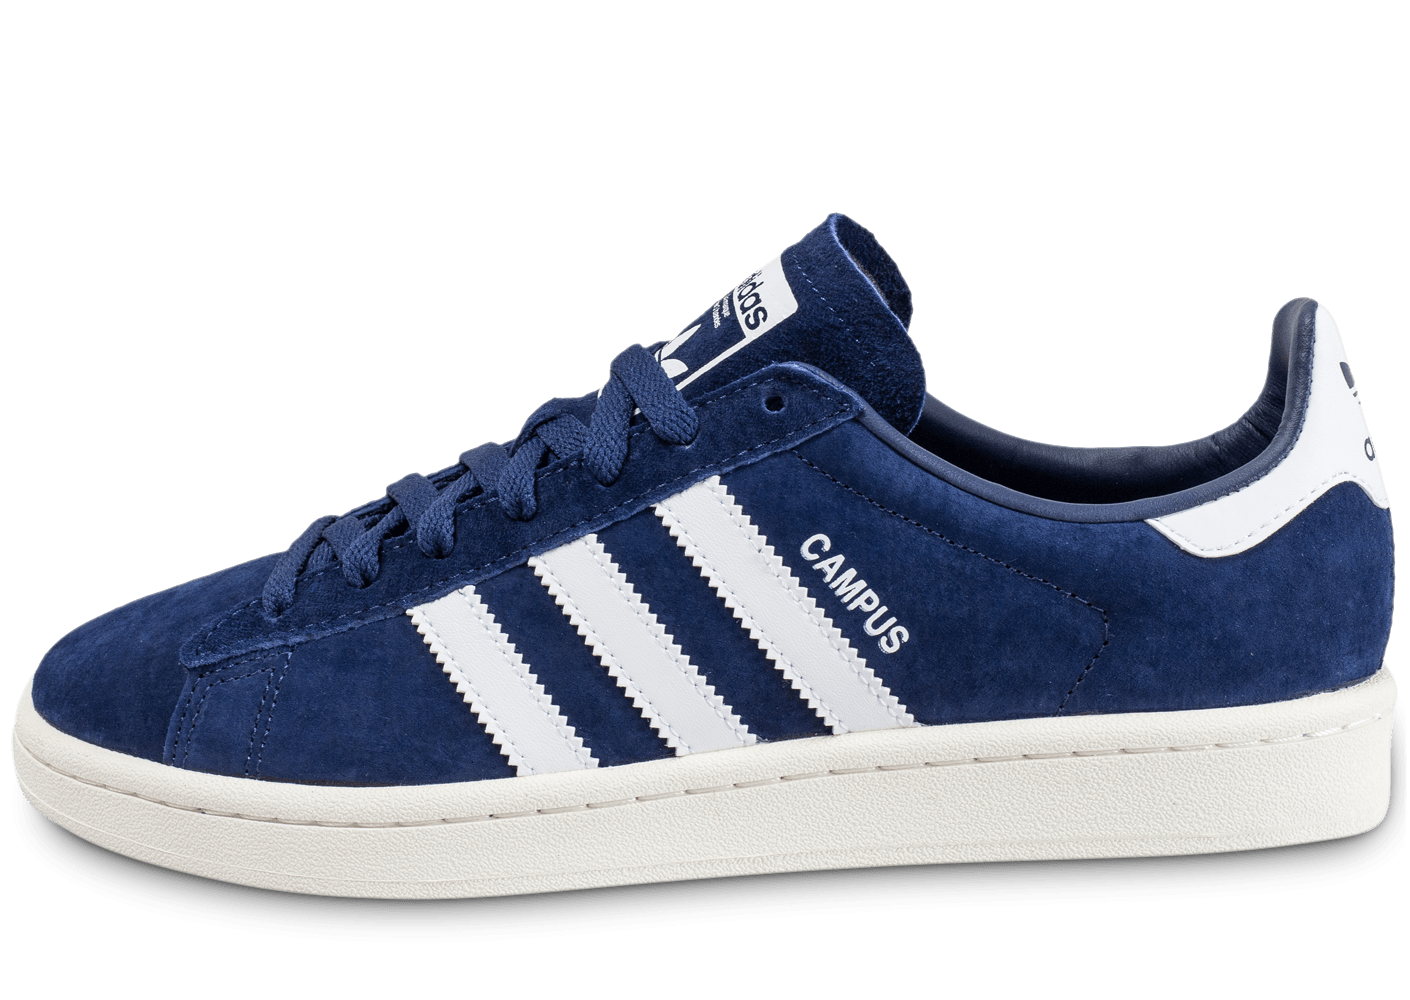 adidas campus bleu marine chaussures homme chausport. Black Bedroom Furniture Sets. Home Design Ideas